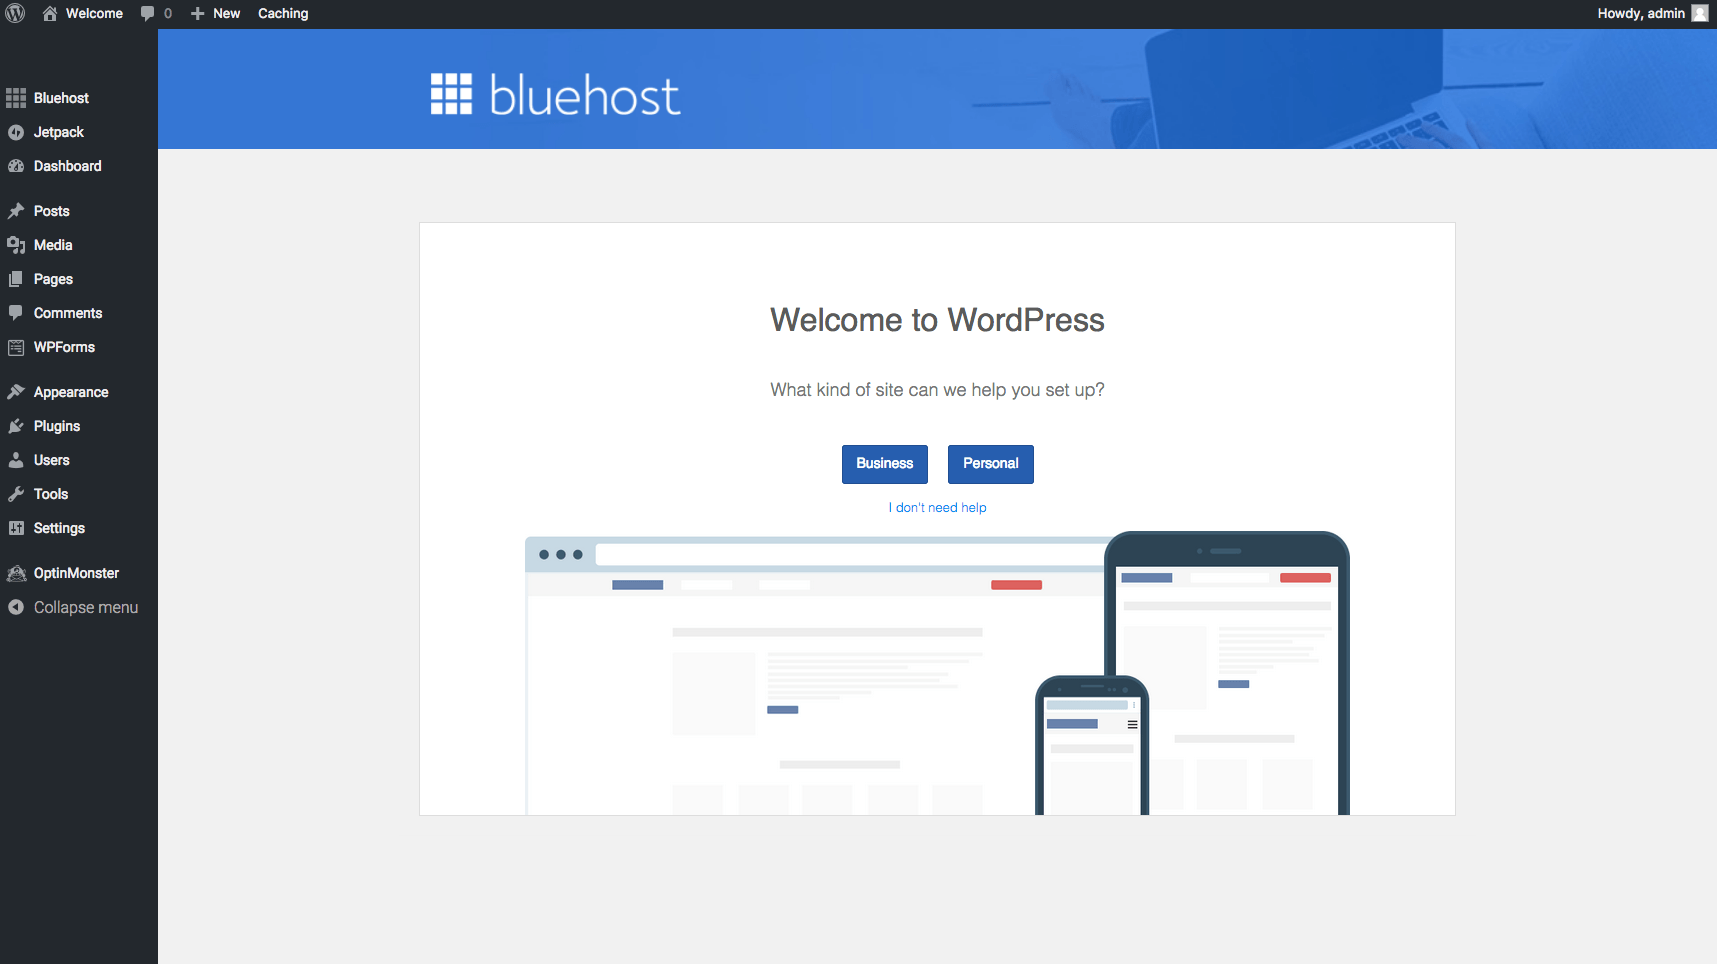 bluehost-wordpress-dasboard